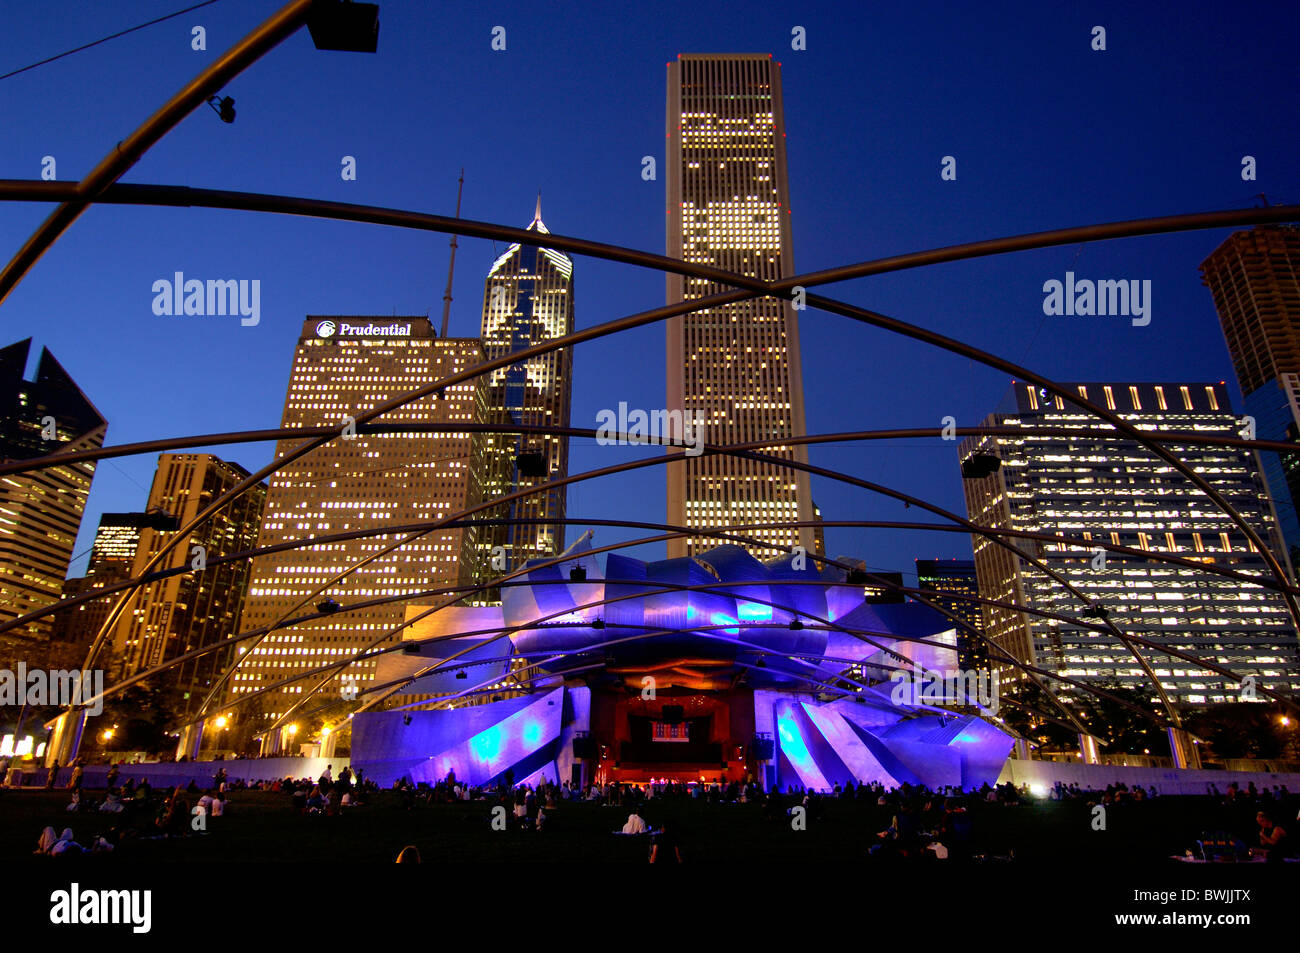 Jay Pritzker Pavilion from Frank Gehry at night night architecture moulder art skill culture person dusk tw - Stock Image